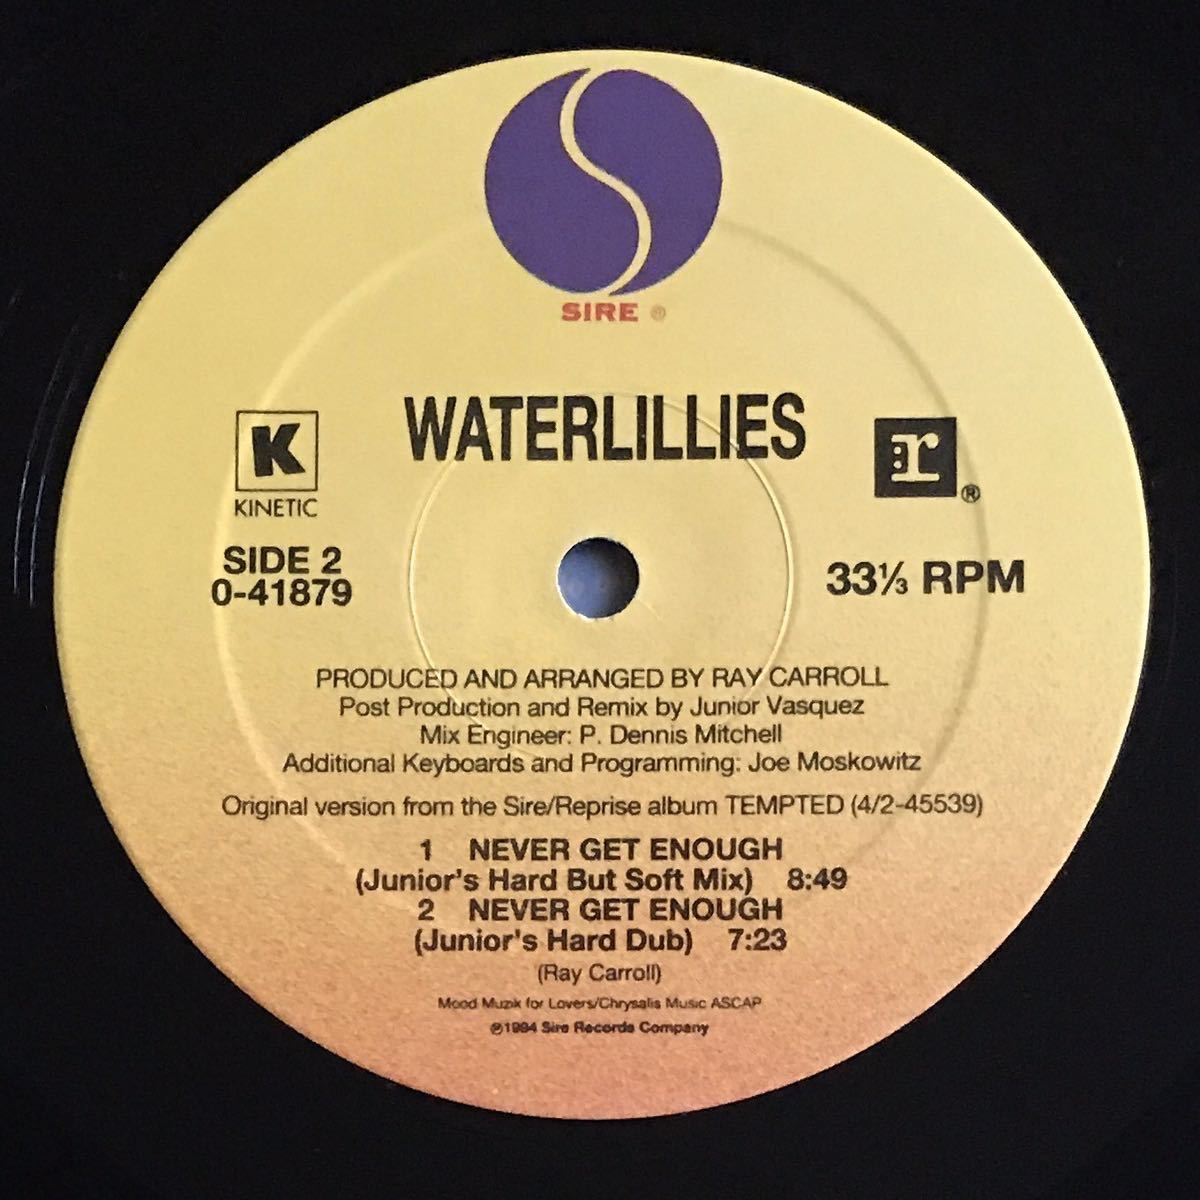 【house】Waterlillies / Never Get Enough[12inch]オリジナル盤《9595》